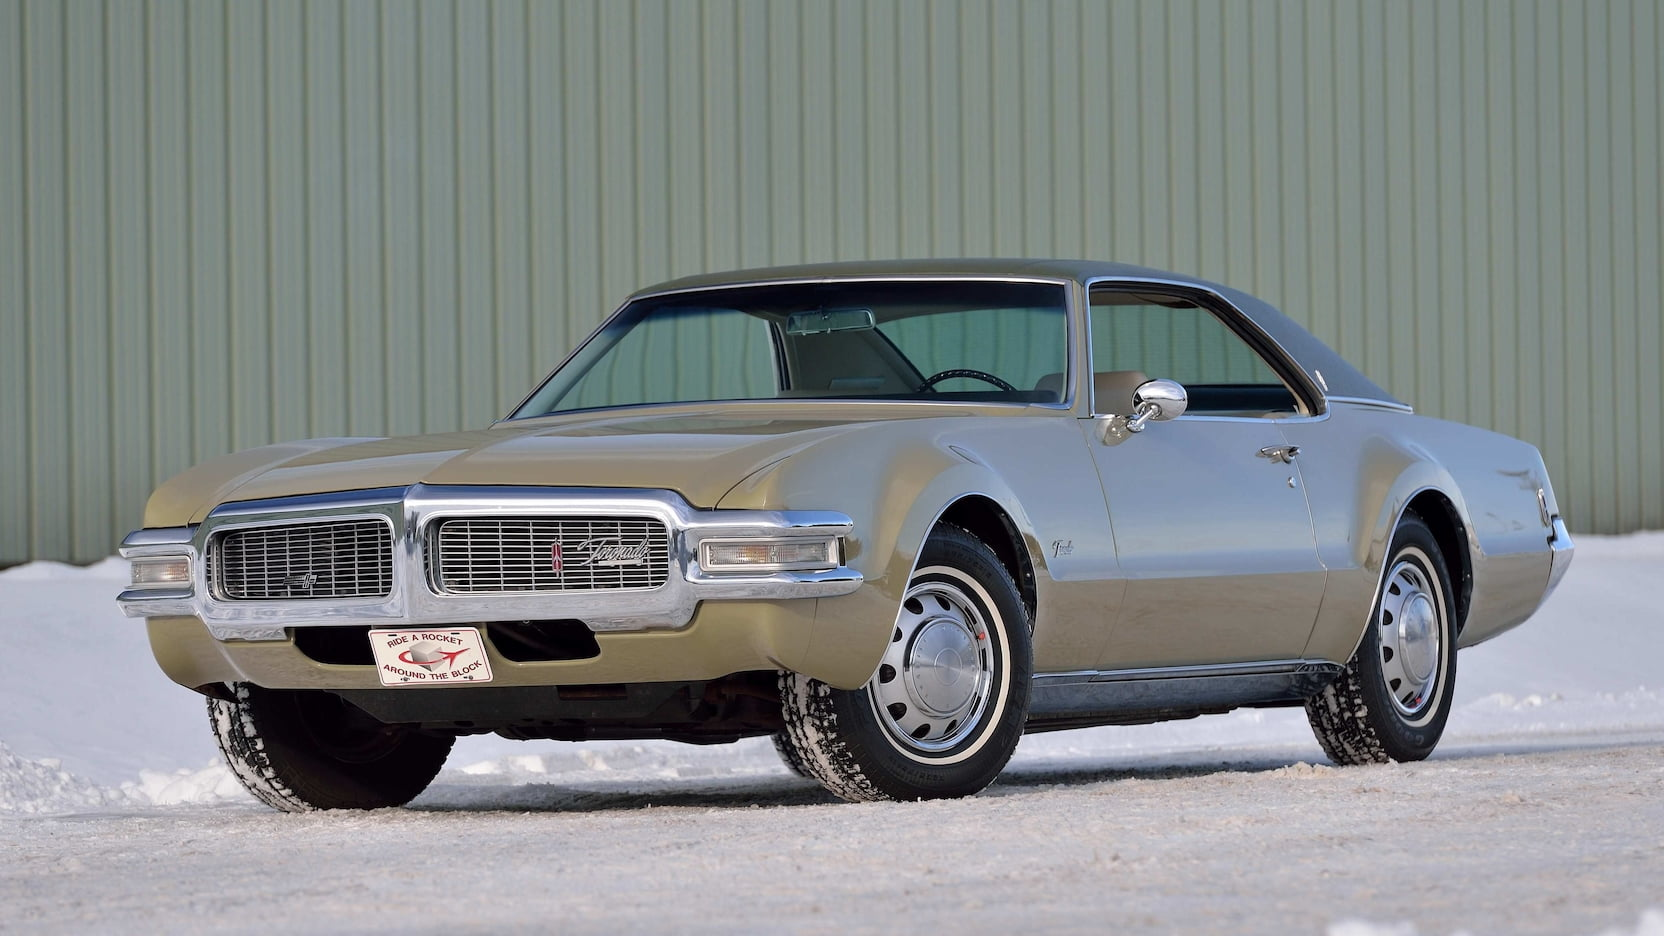 The Oldsmobile Toronado boasts jet-age style and affordable prices thumbnail